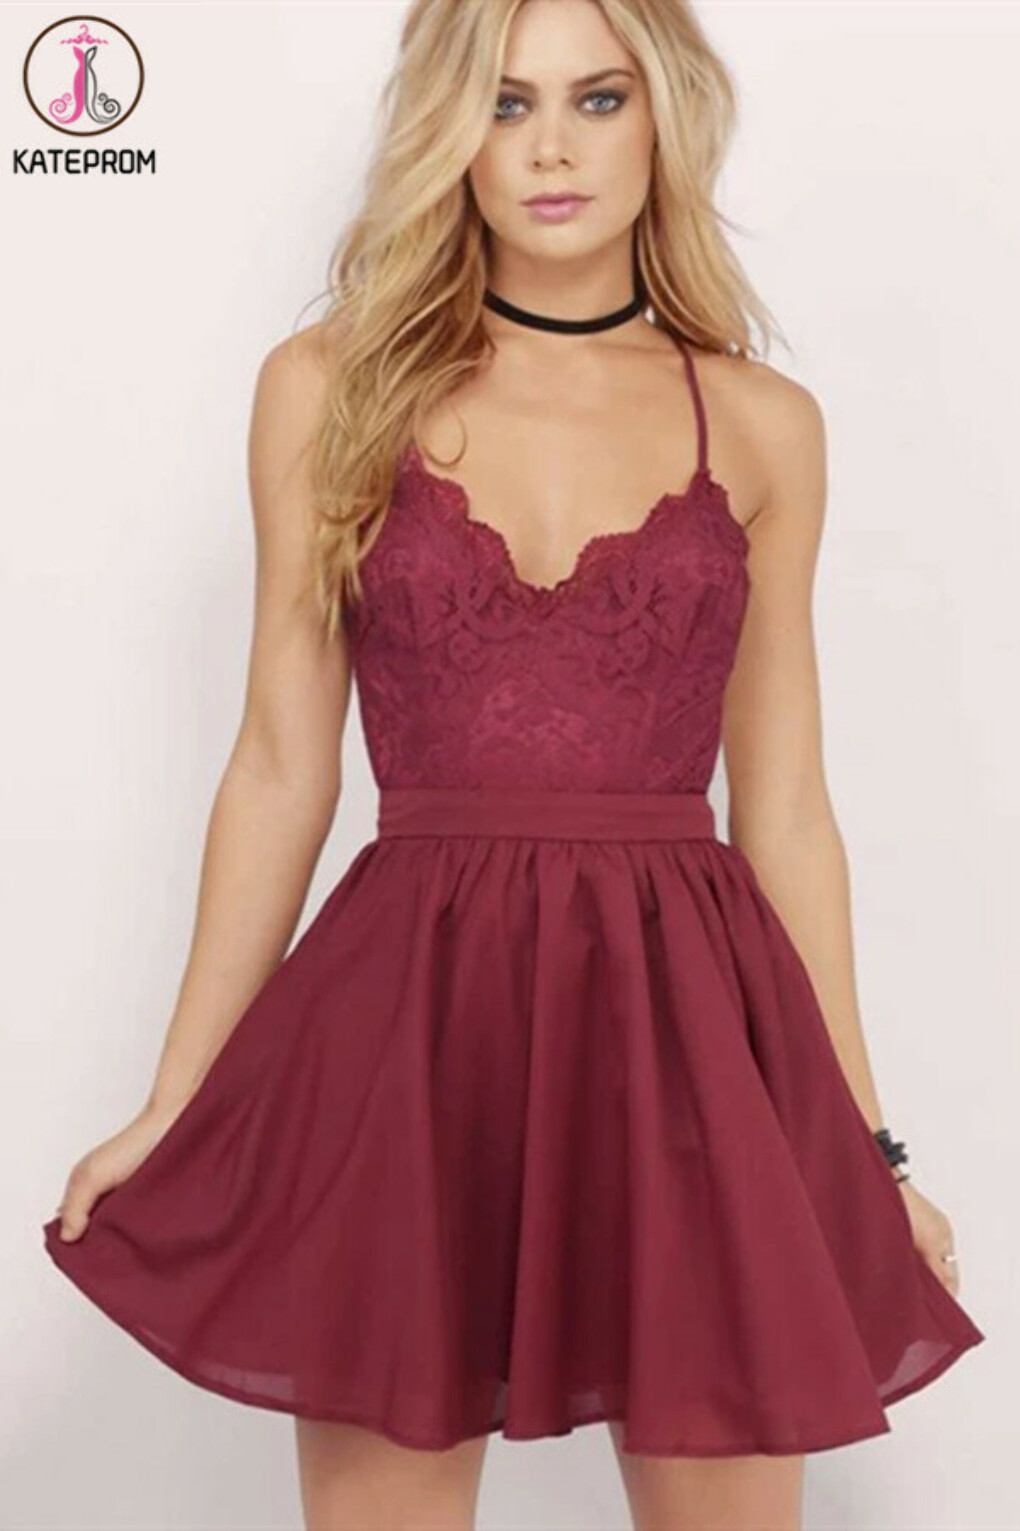 Kateprom Burgundy Homecoming Dress Spaghetti Straps A-line Lace Short Prom Dress Party Dress KPH0547